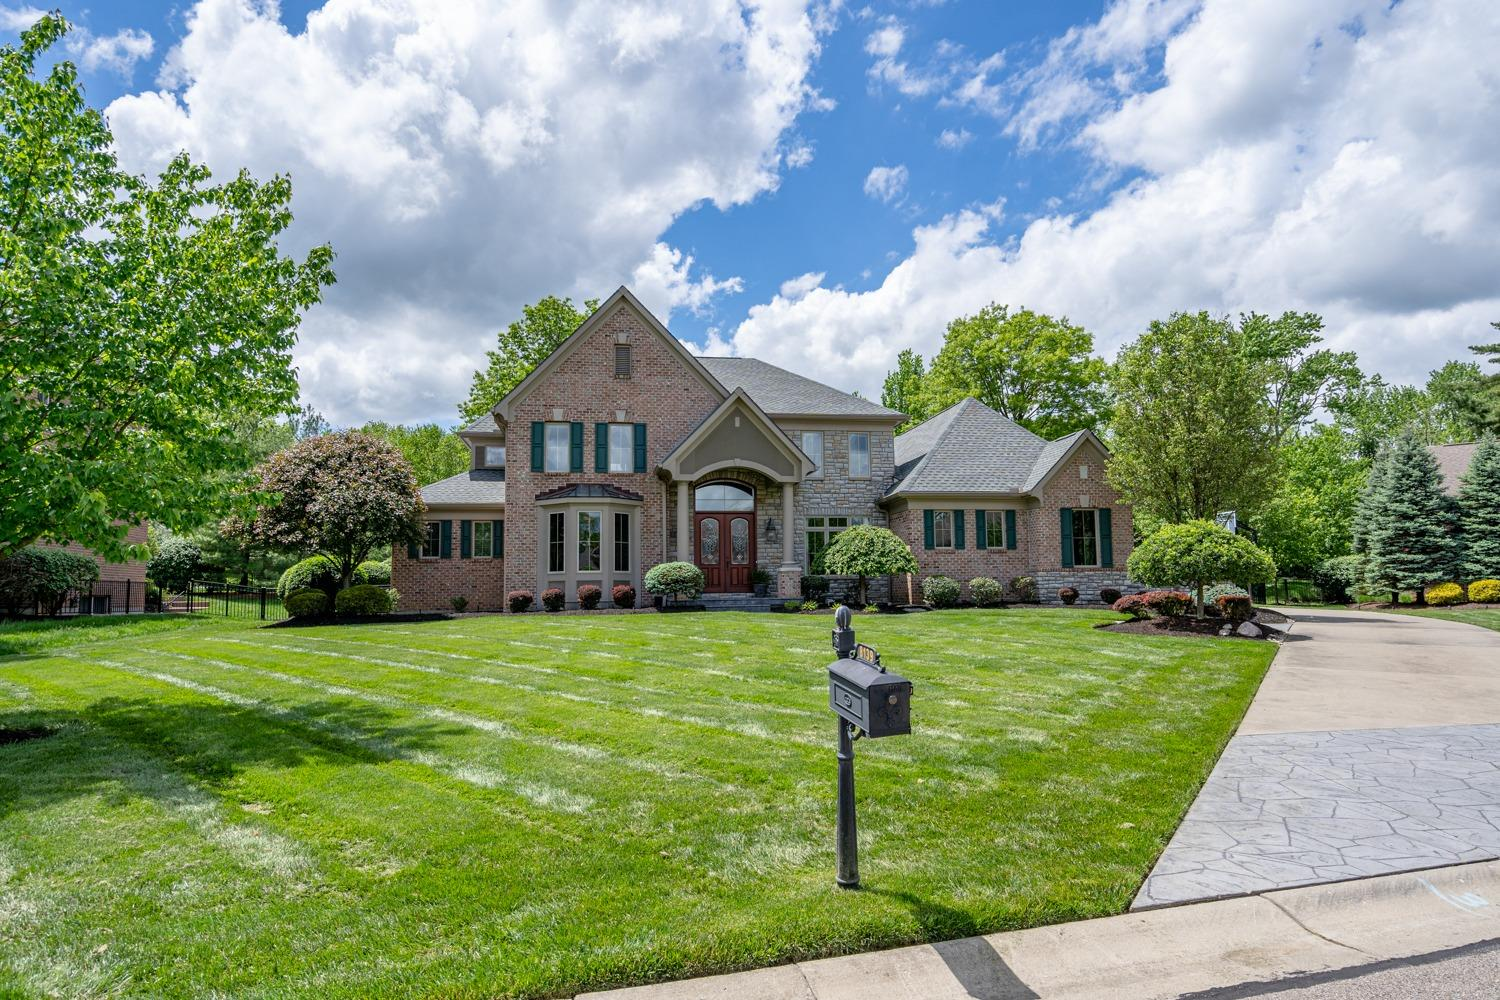 8139 Deer Path Ln Sycamore Twp., OH